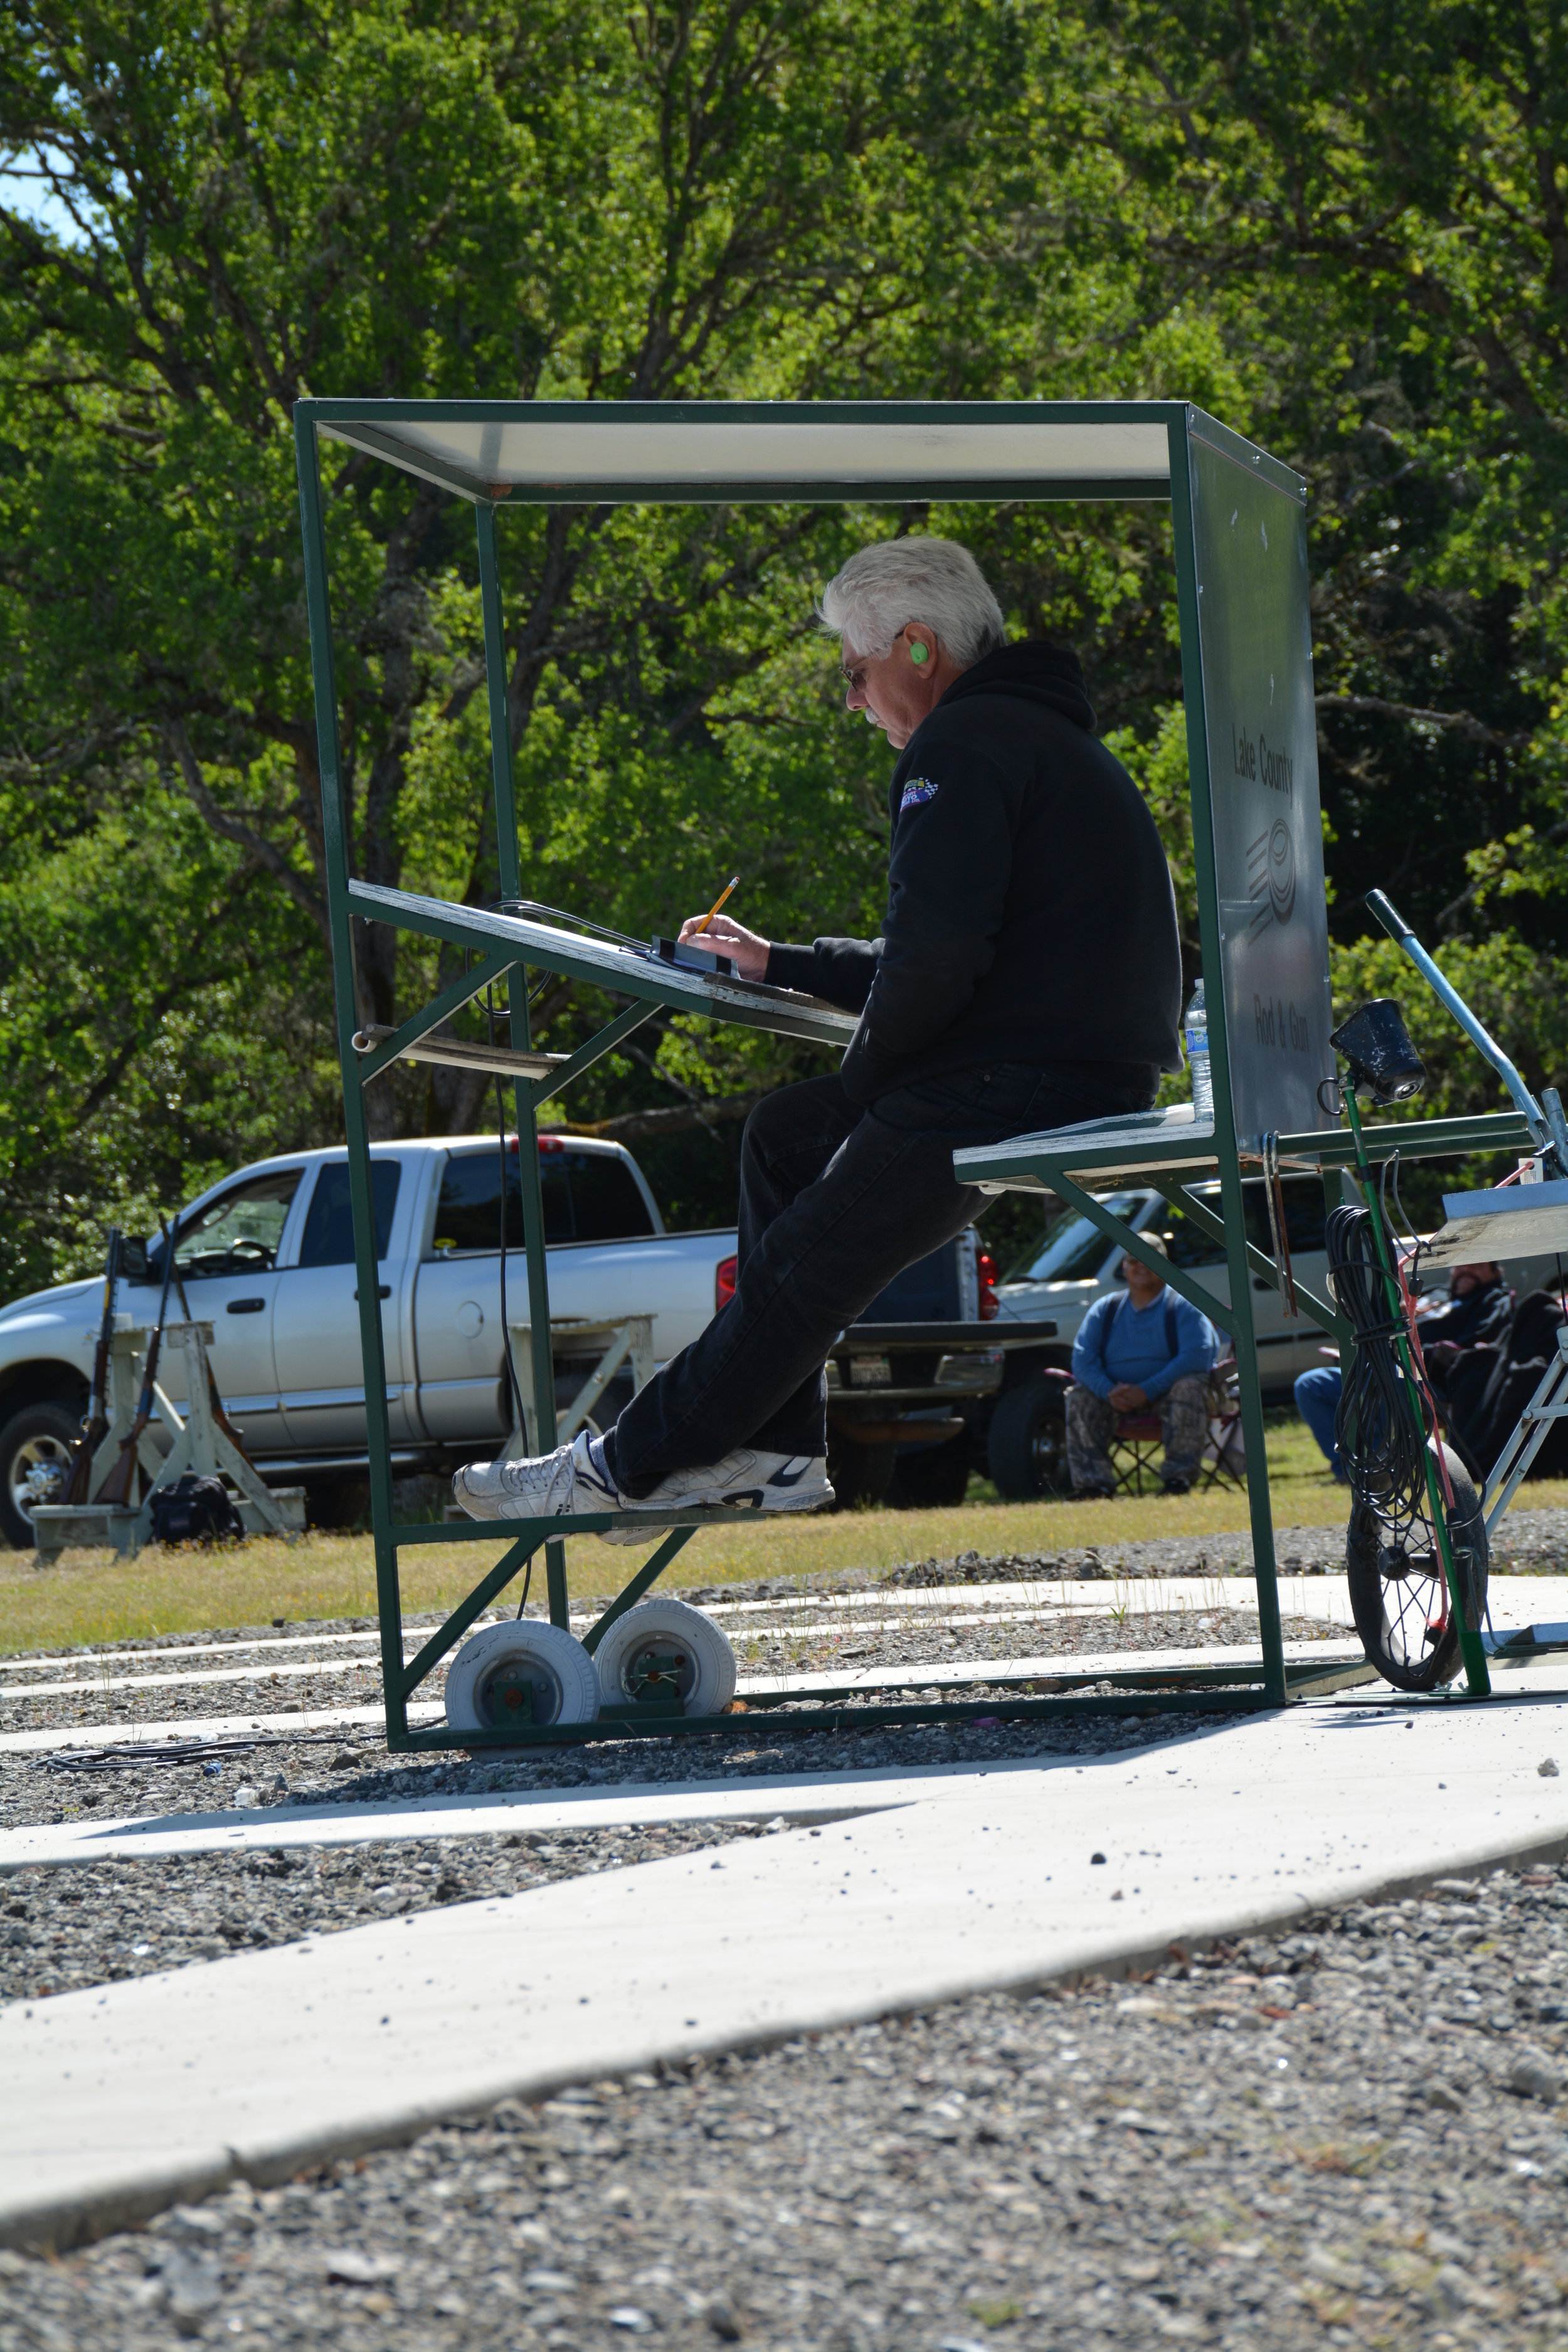 The tireless job of a score keeper during a Round Robin